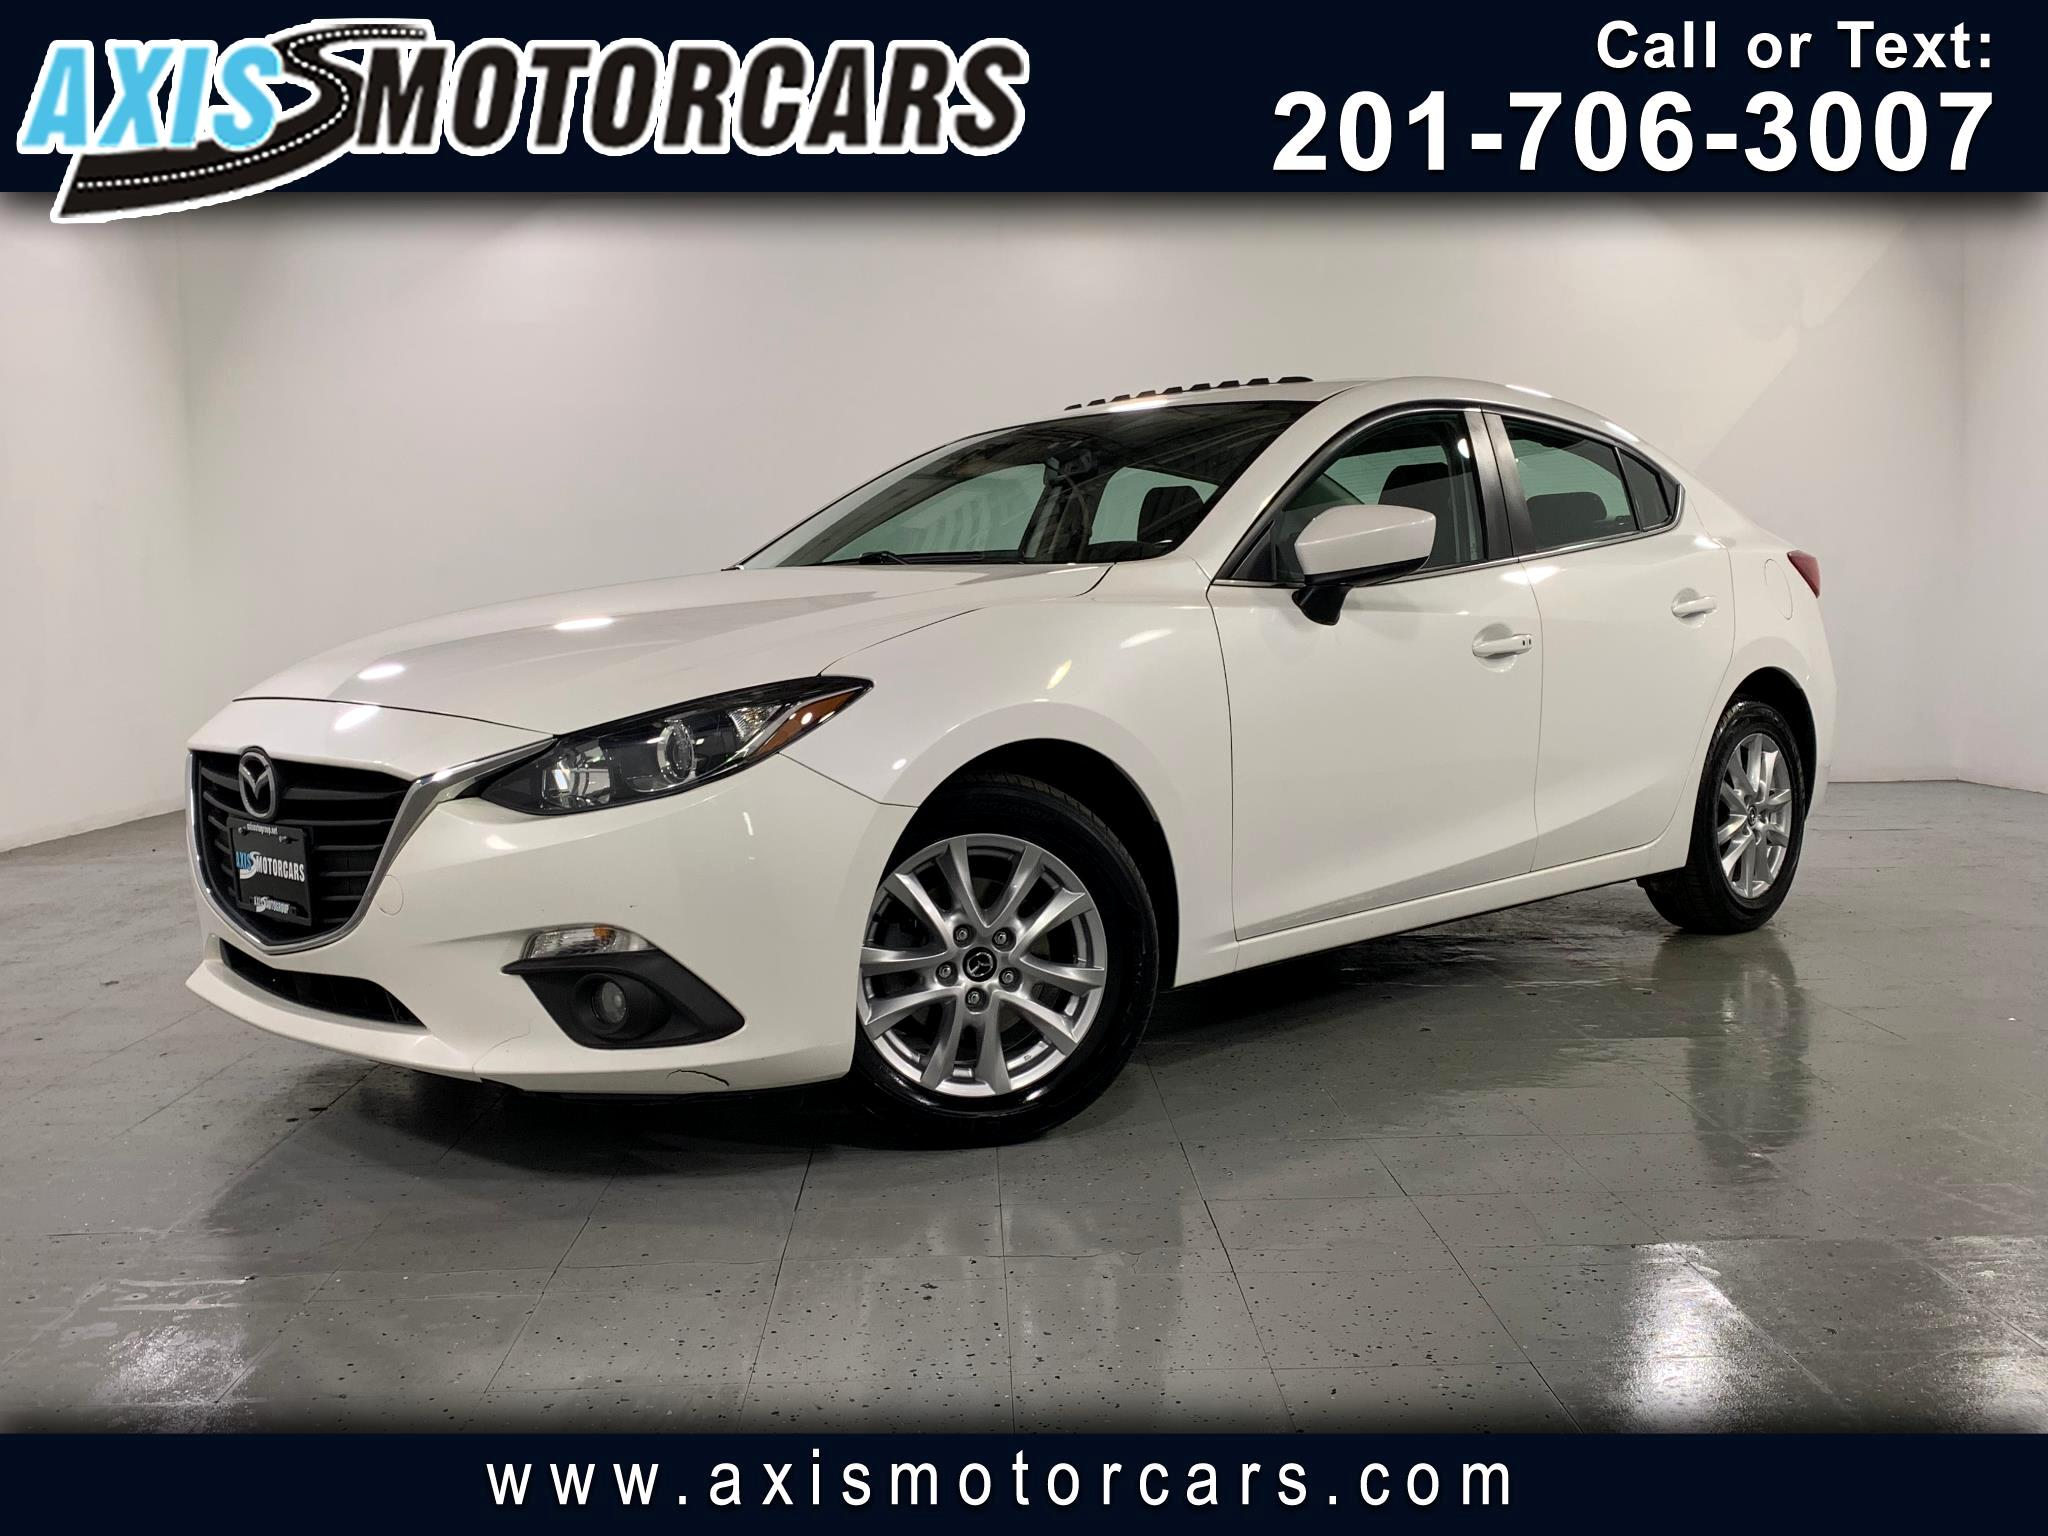 2016 Mazda MAZDA3 Technology w/Bose Sound Navigation Backup Camera